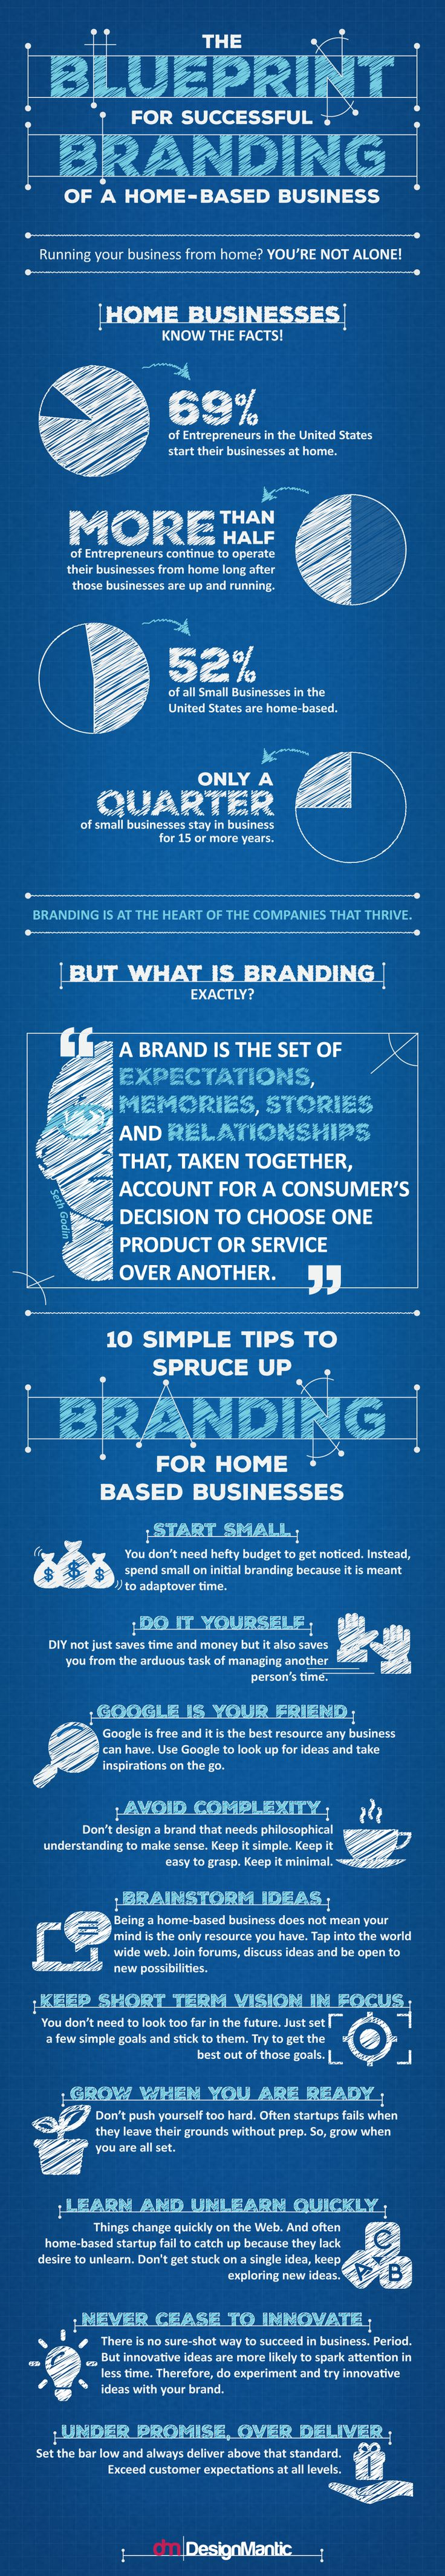 The Blueprint For Successful Branding Of A Home Based Business | http://www.designmantic.com/blog/infographics/branding-blueprint-for-home-based-business/